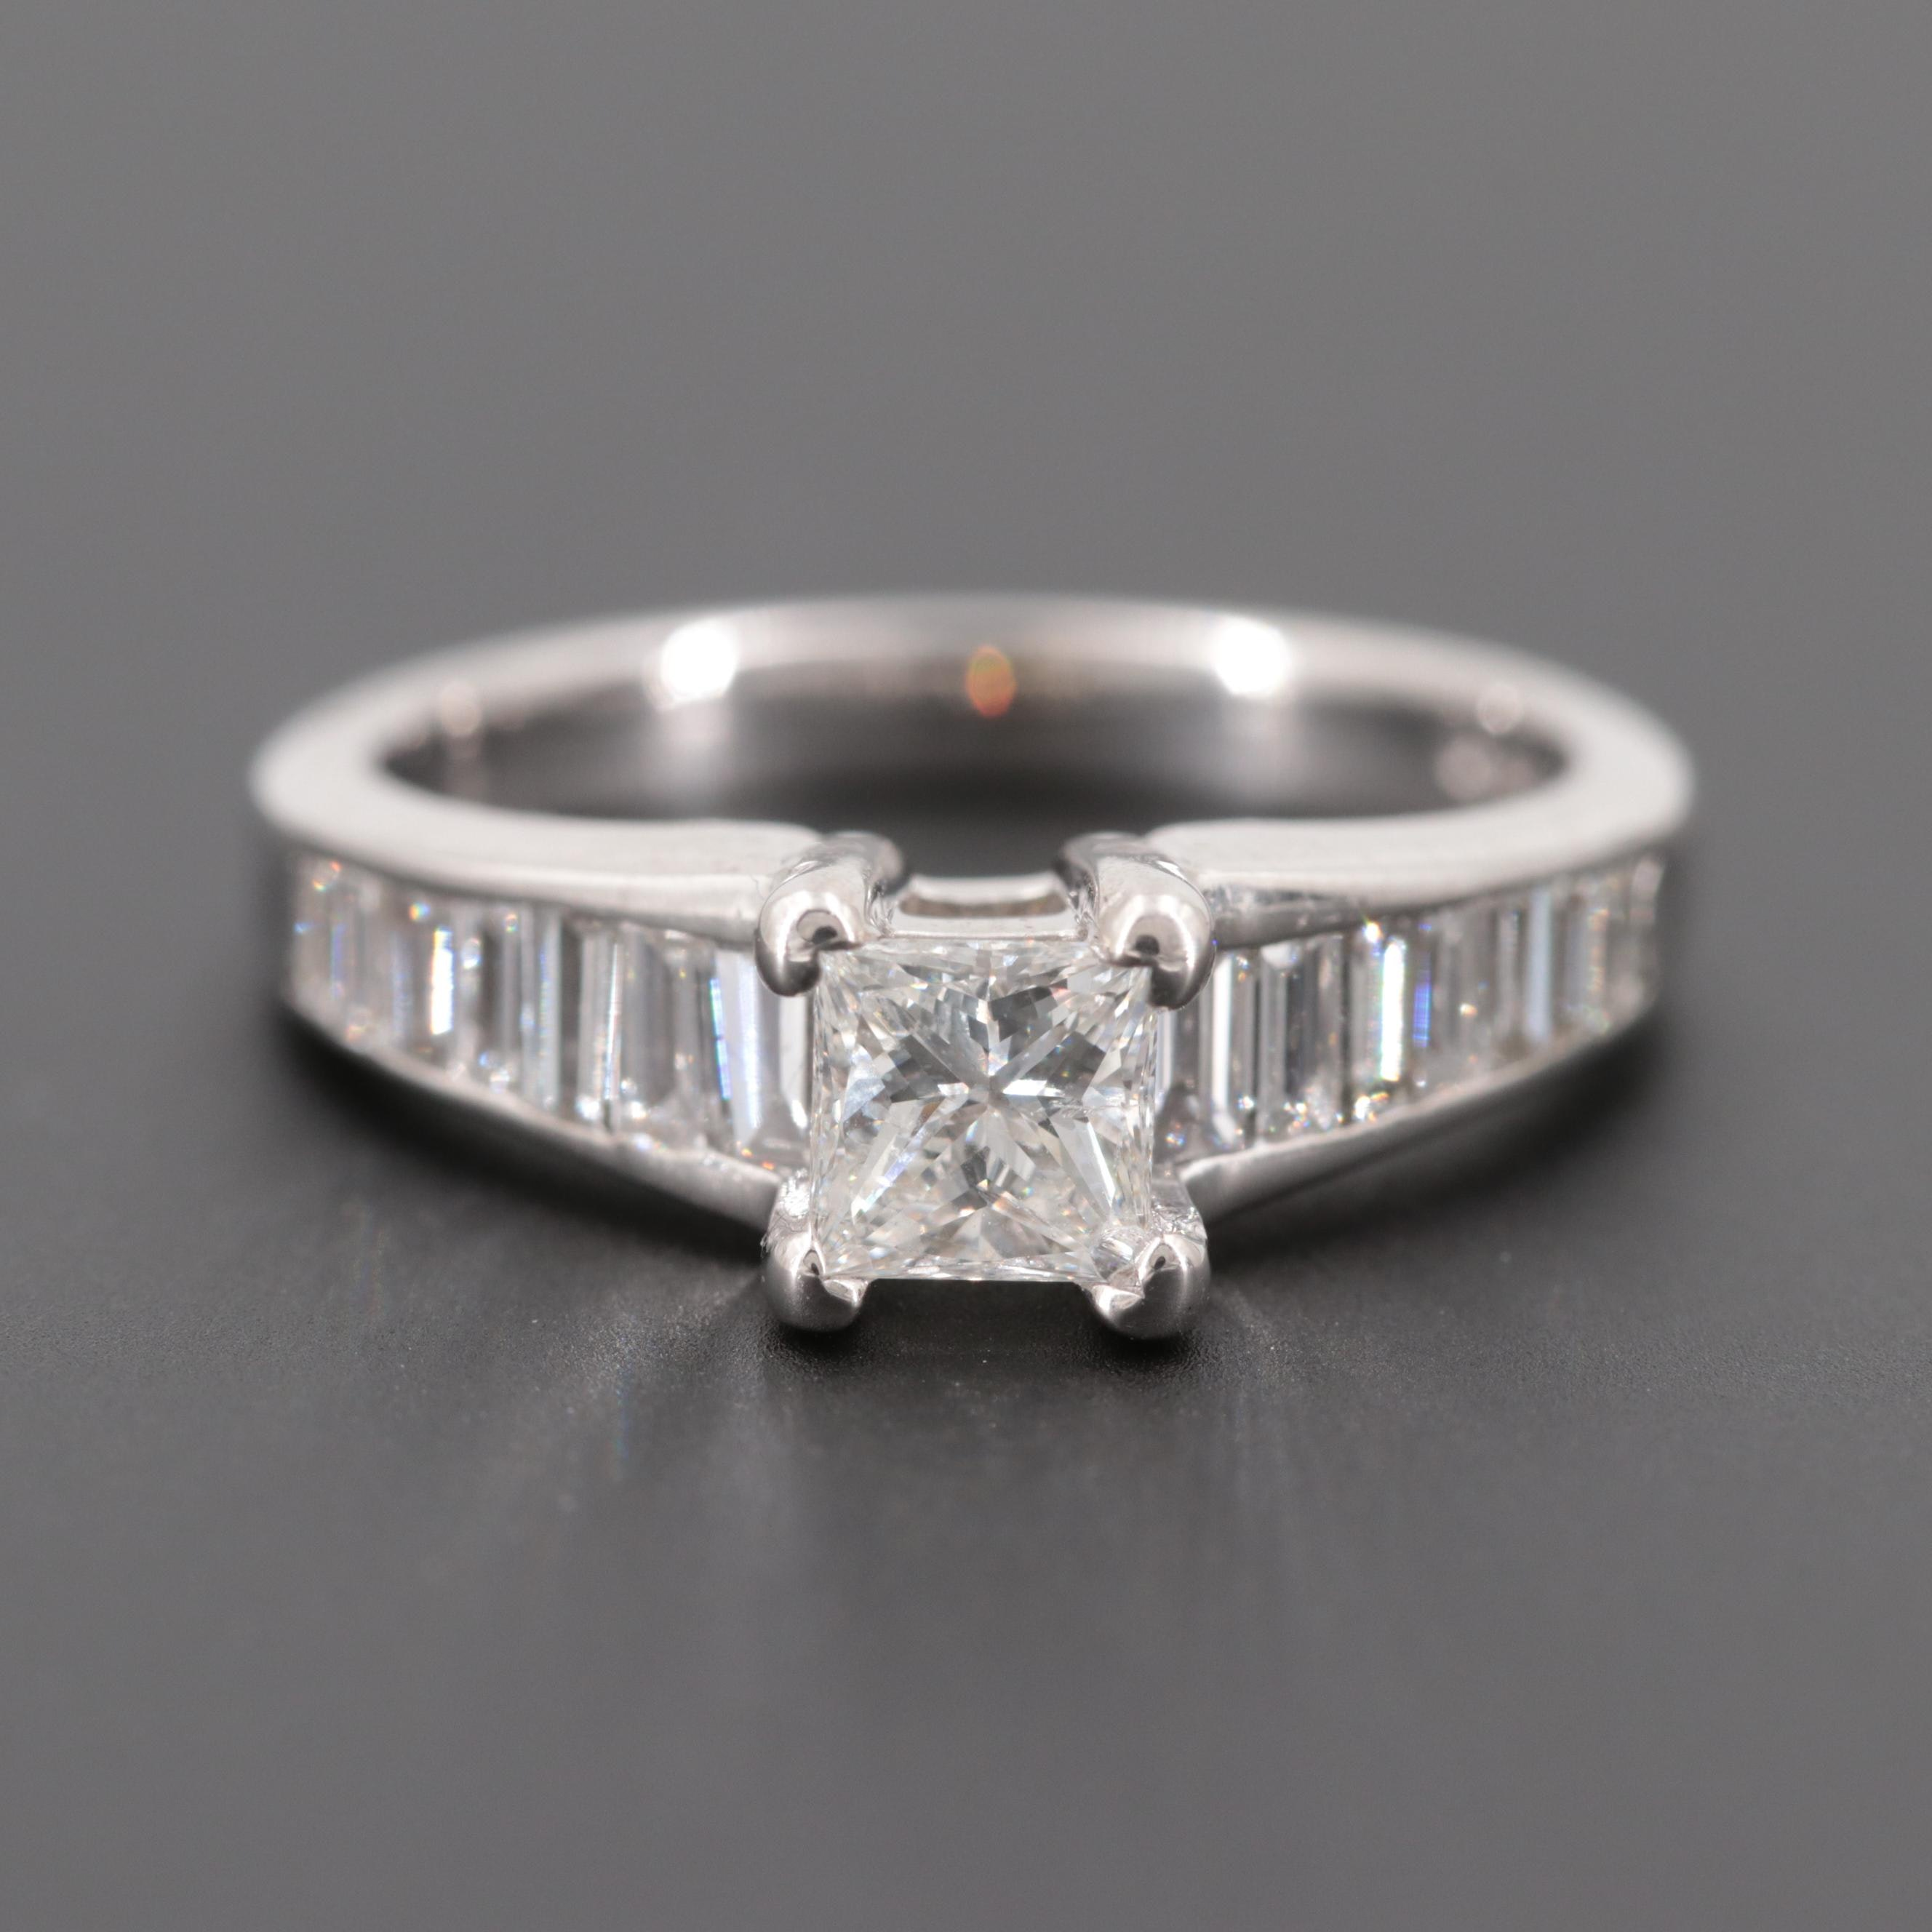 14K White Gold 1.55 CTW Diamond Ring